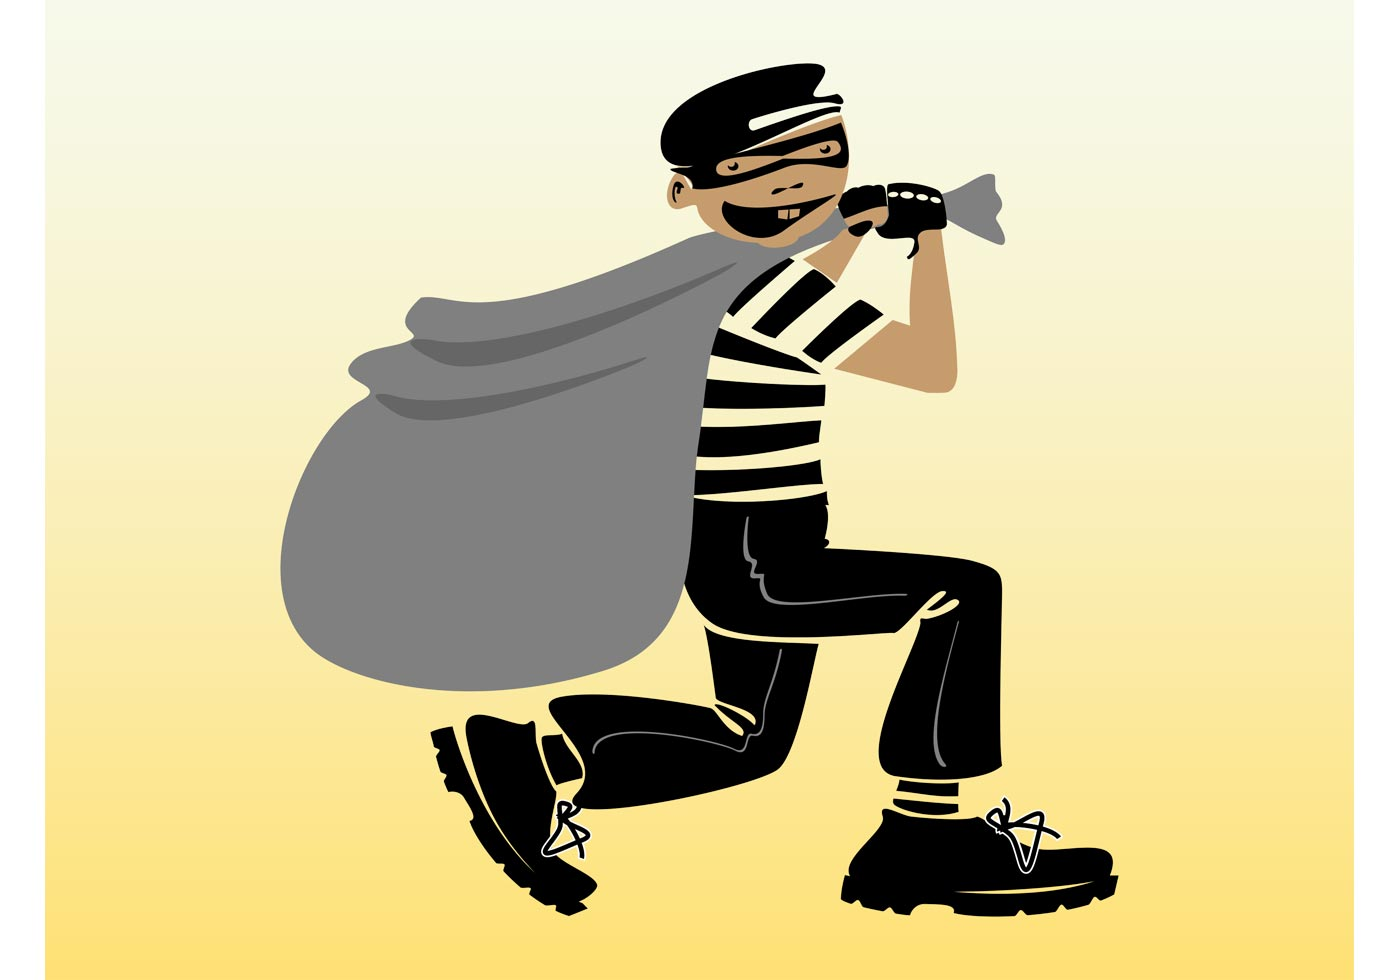 Robber Free Vector Art - (1561 Free Downloads)